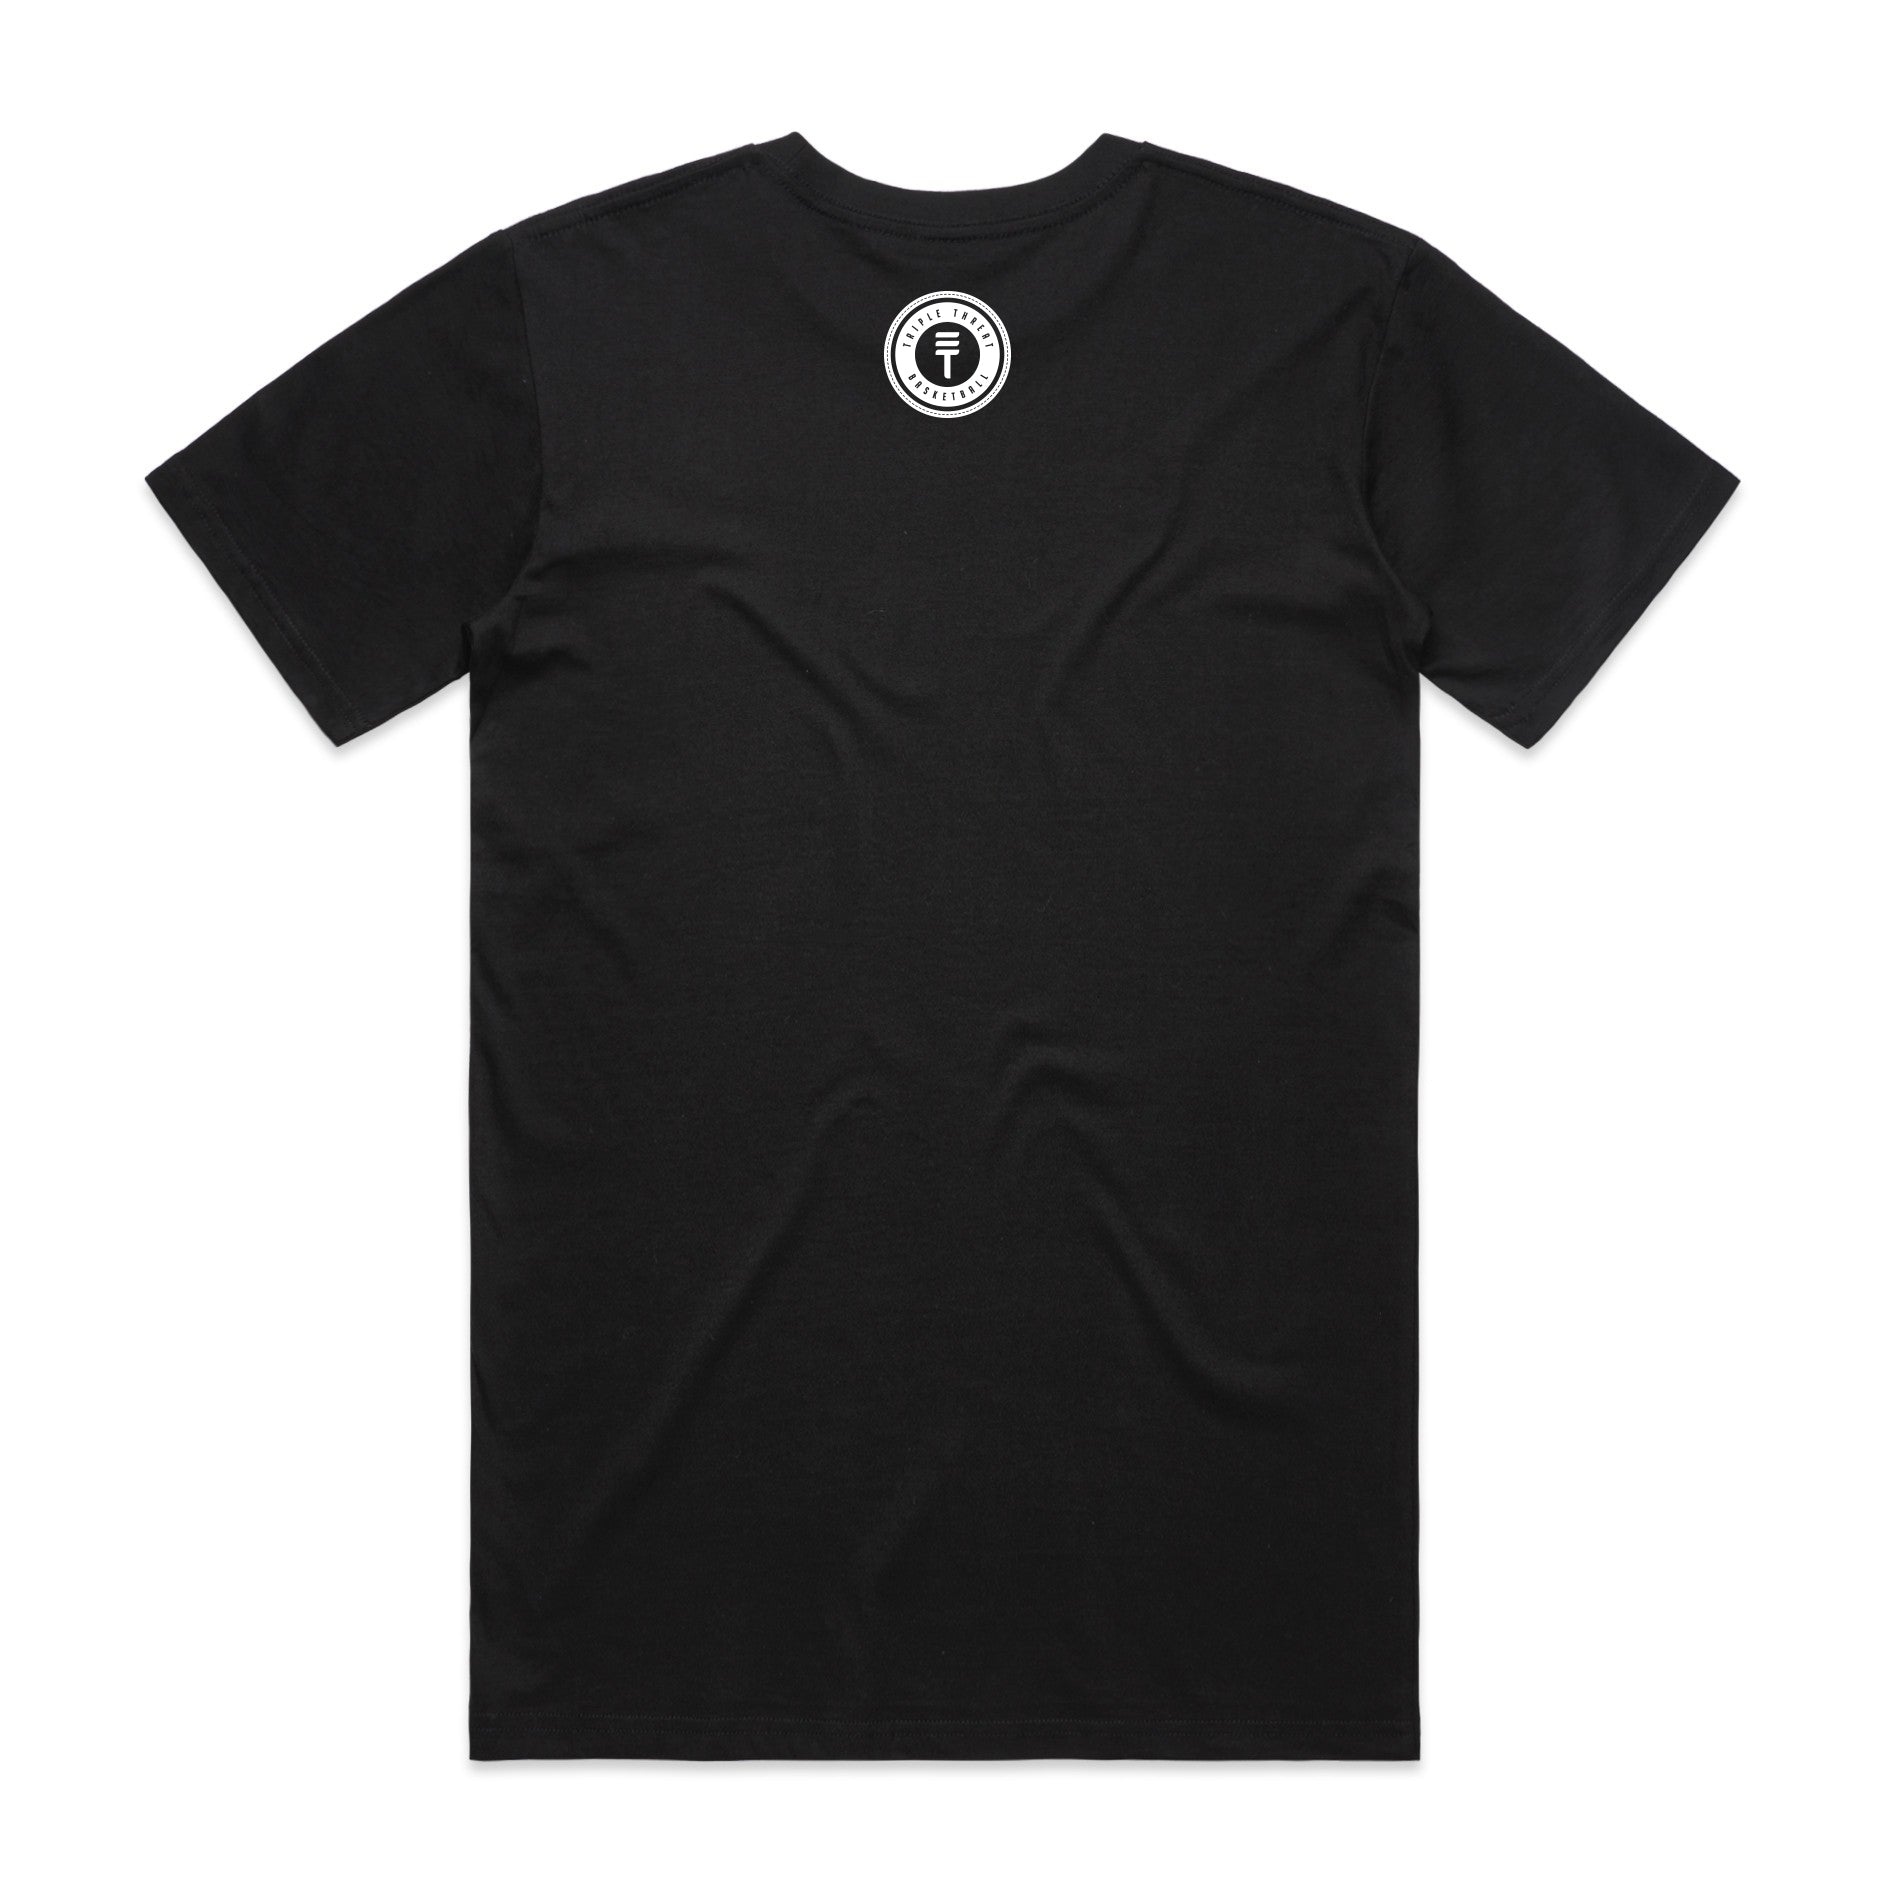 BUFFALO T-SHIRT - BLACK